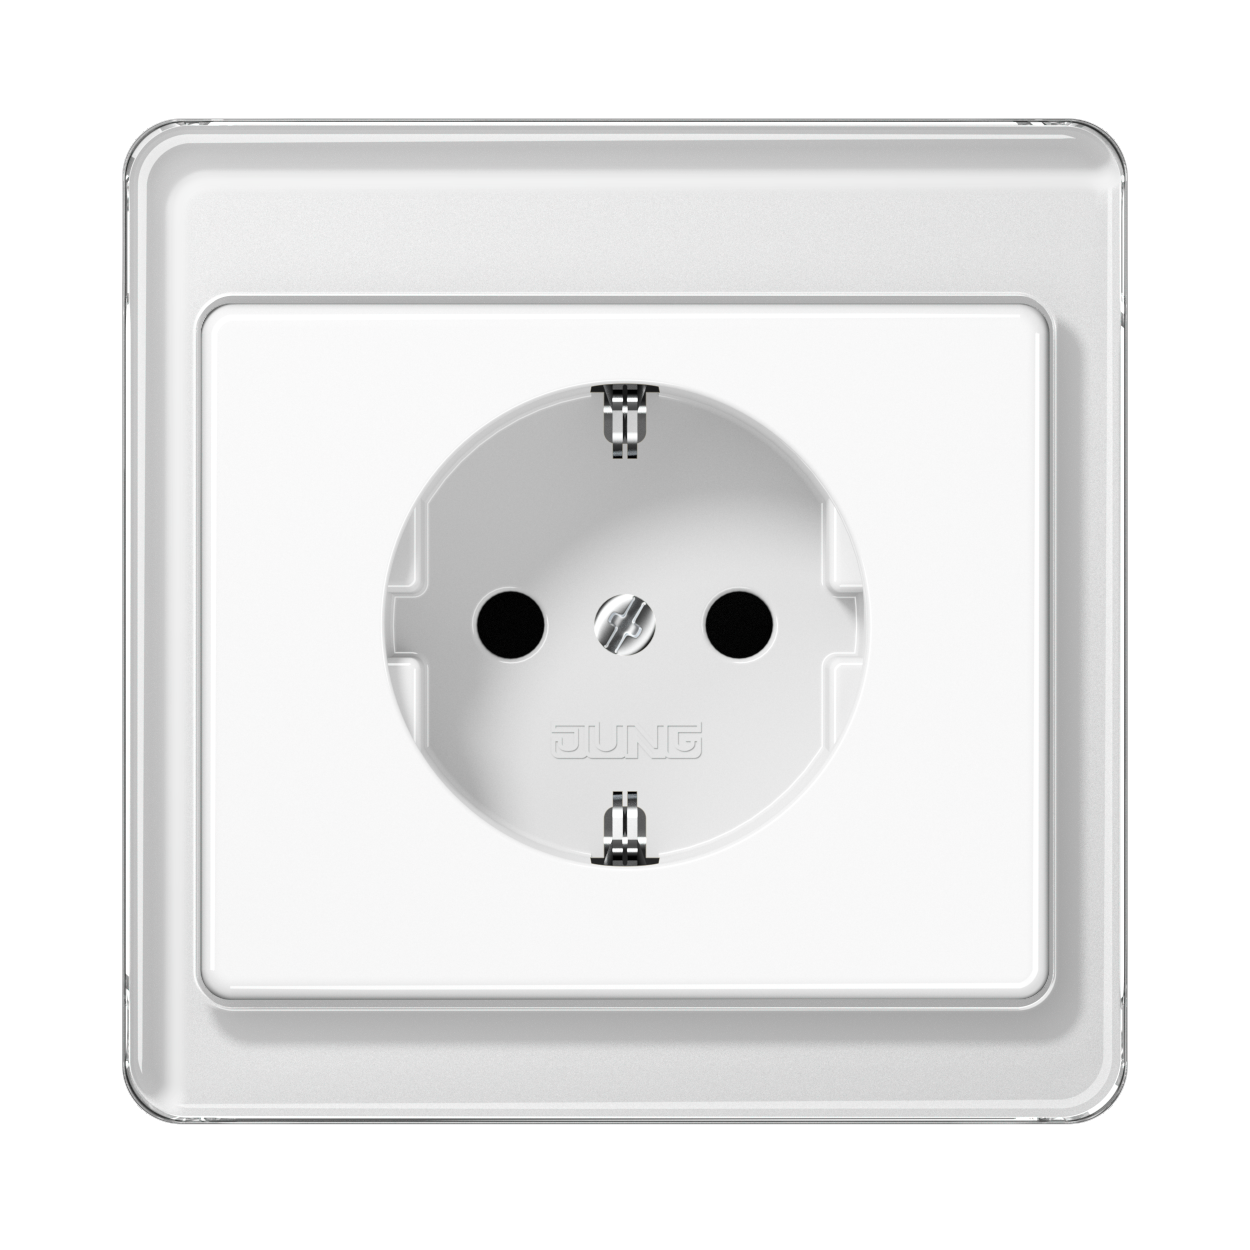 JUNG_SL500_white_socket